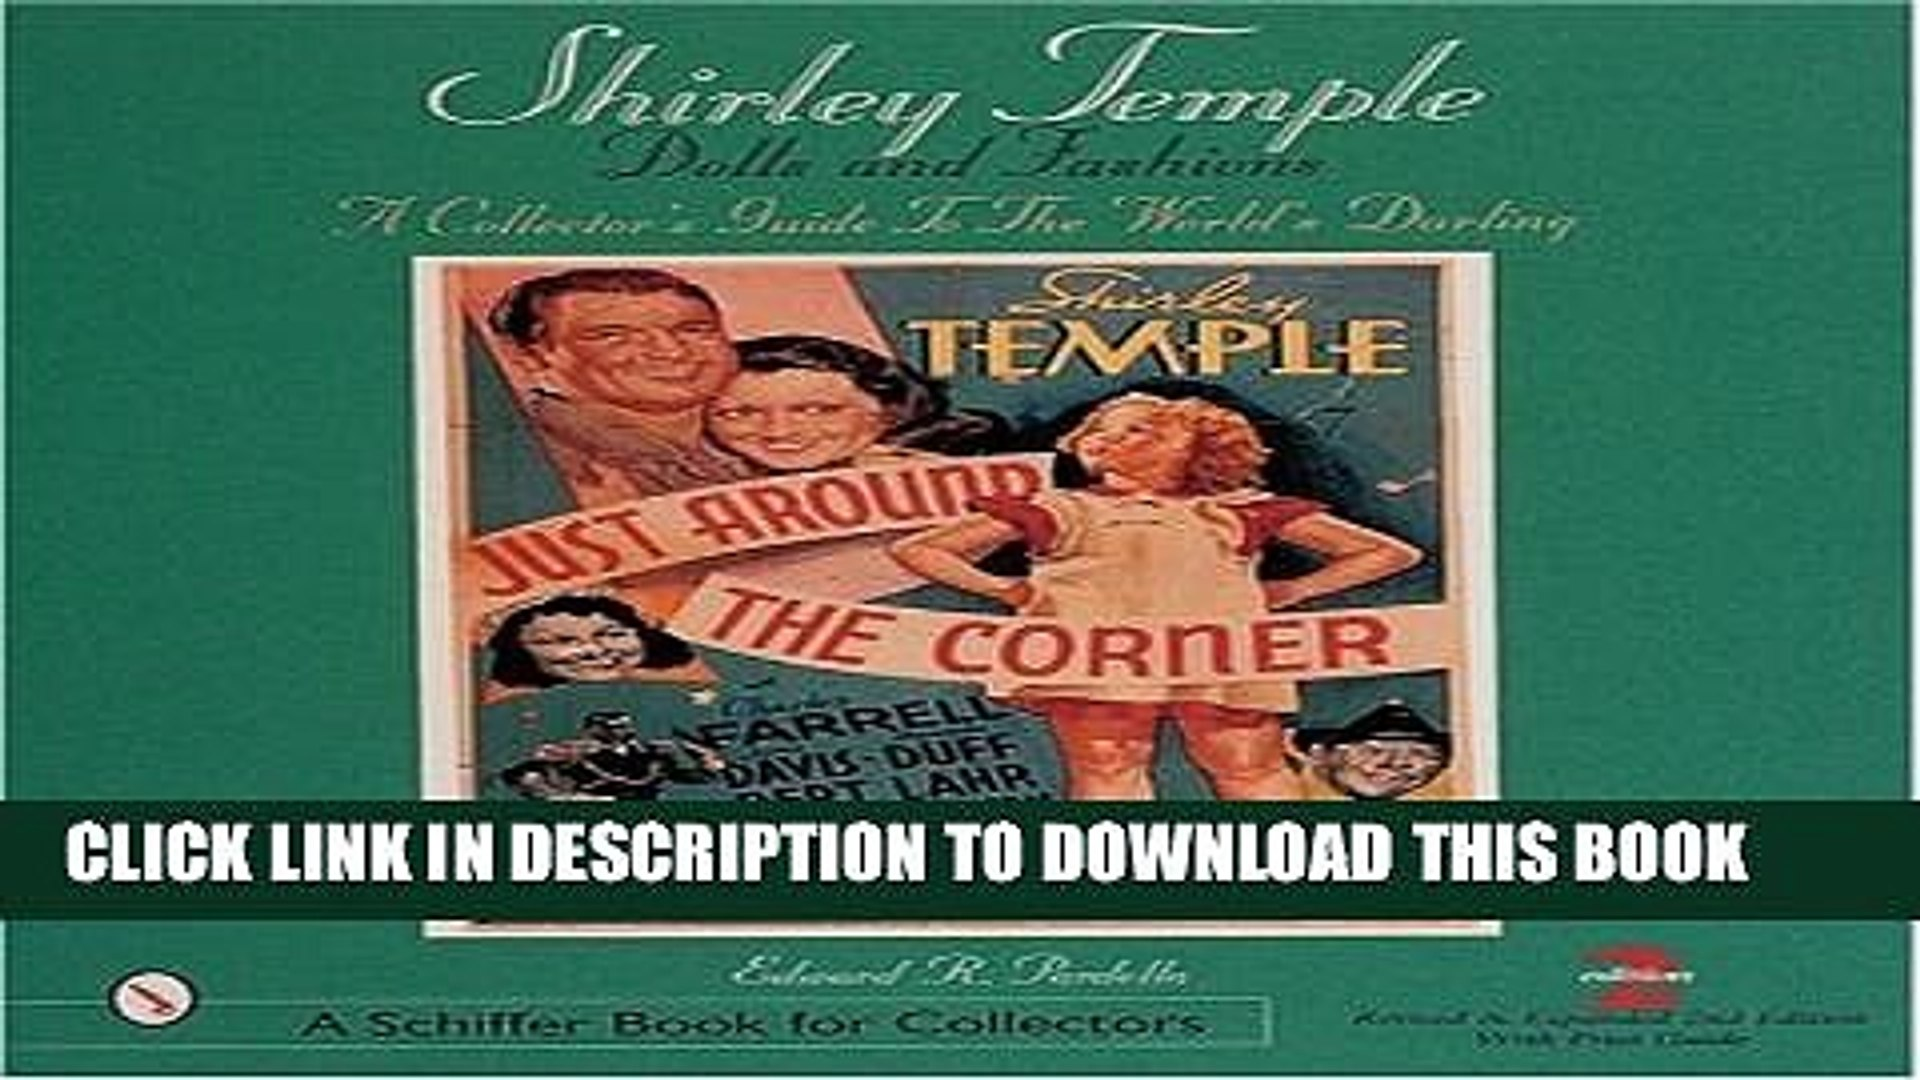 [PDF] Shirley Temple Dolls and Fashions: A Collector s Guide to the World s Darling (Schiffer Book